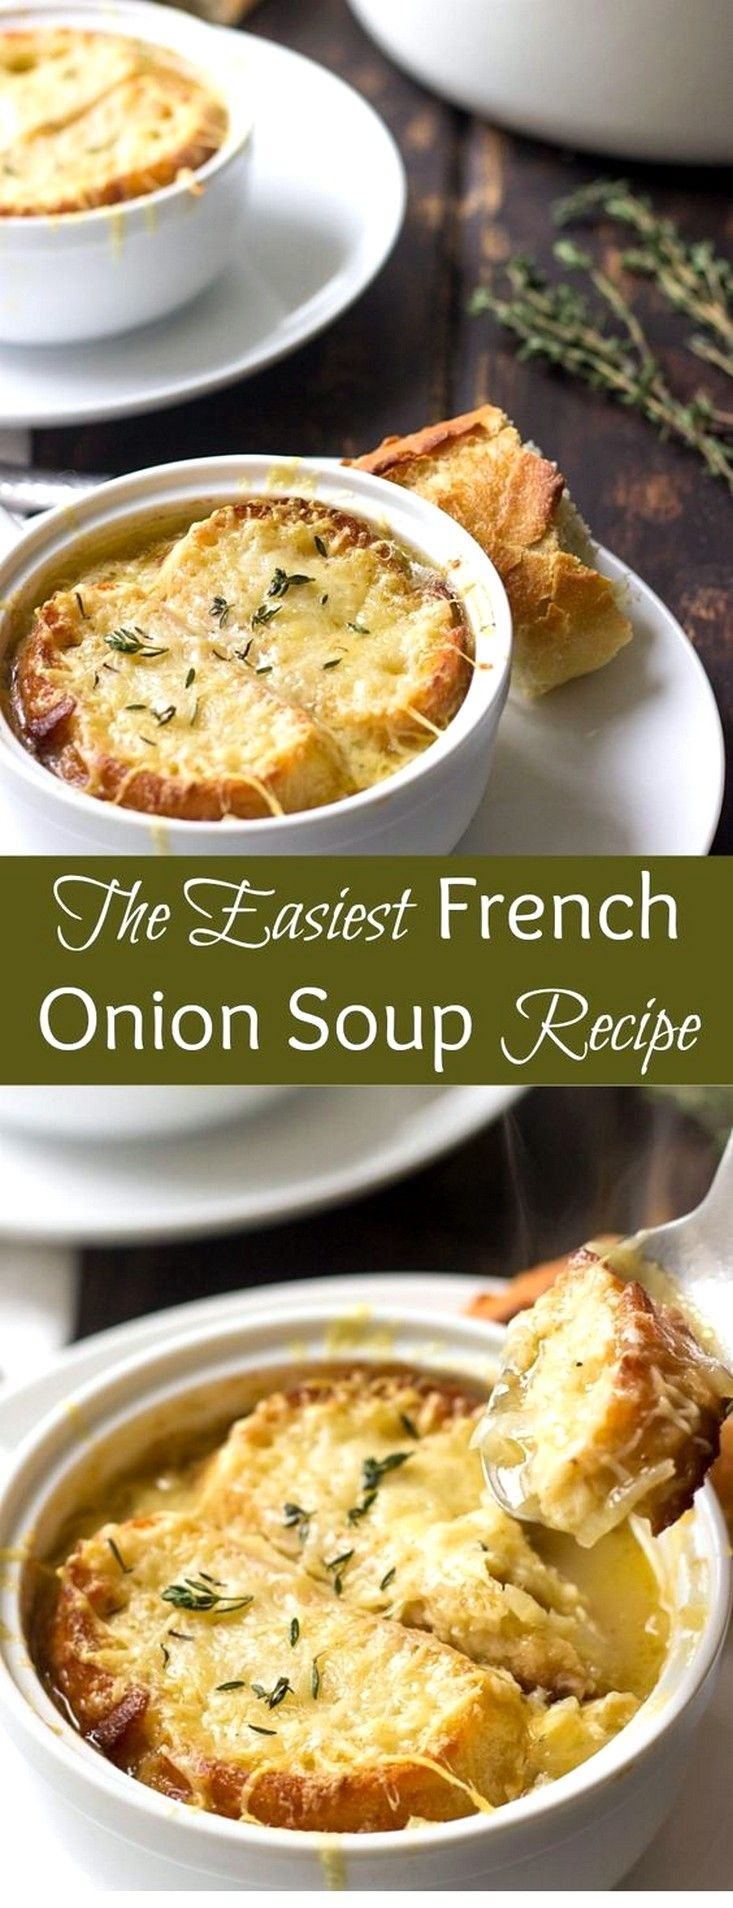 Easy French Onion Soup Recipe Recipe French Onion Soup Easy Easy French Onion Soup Recipe Onion Soup Recipes